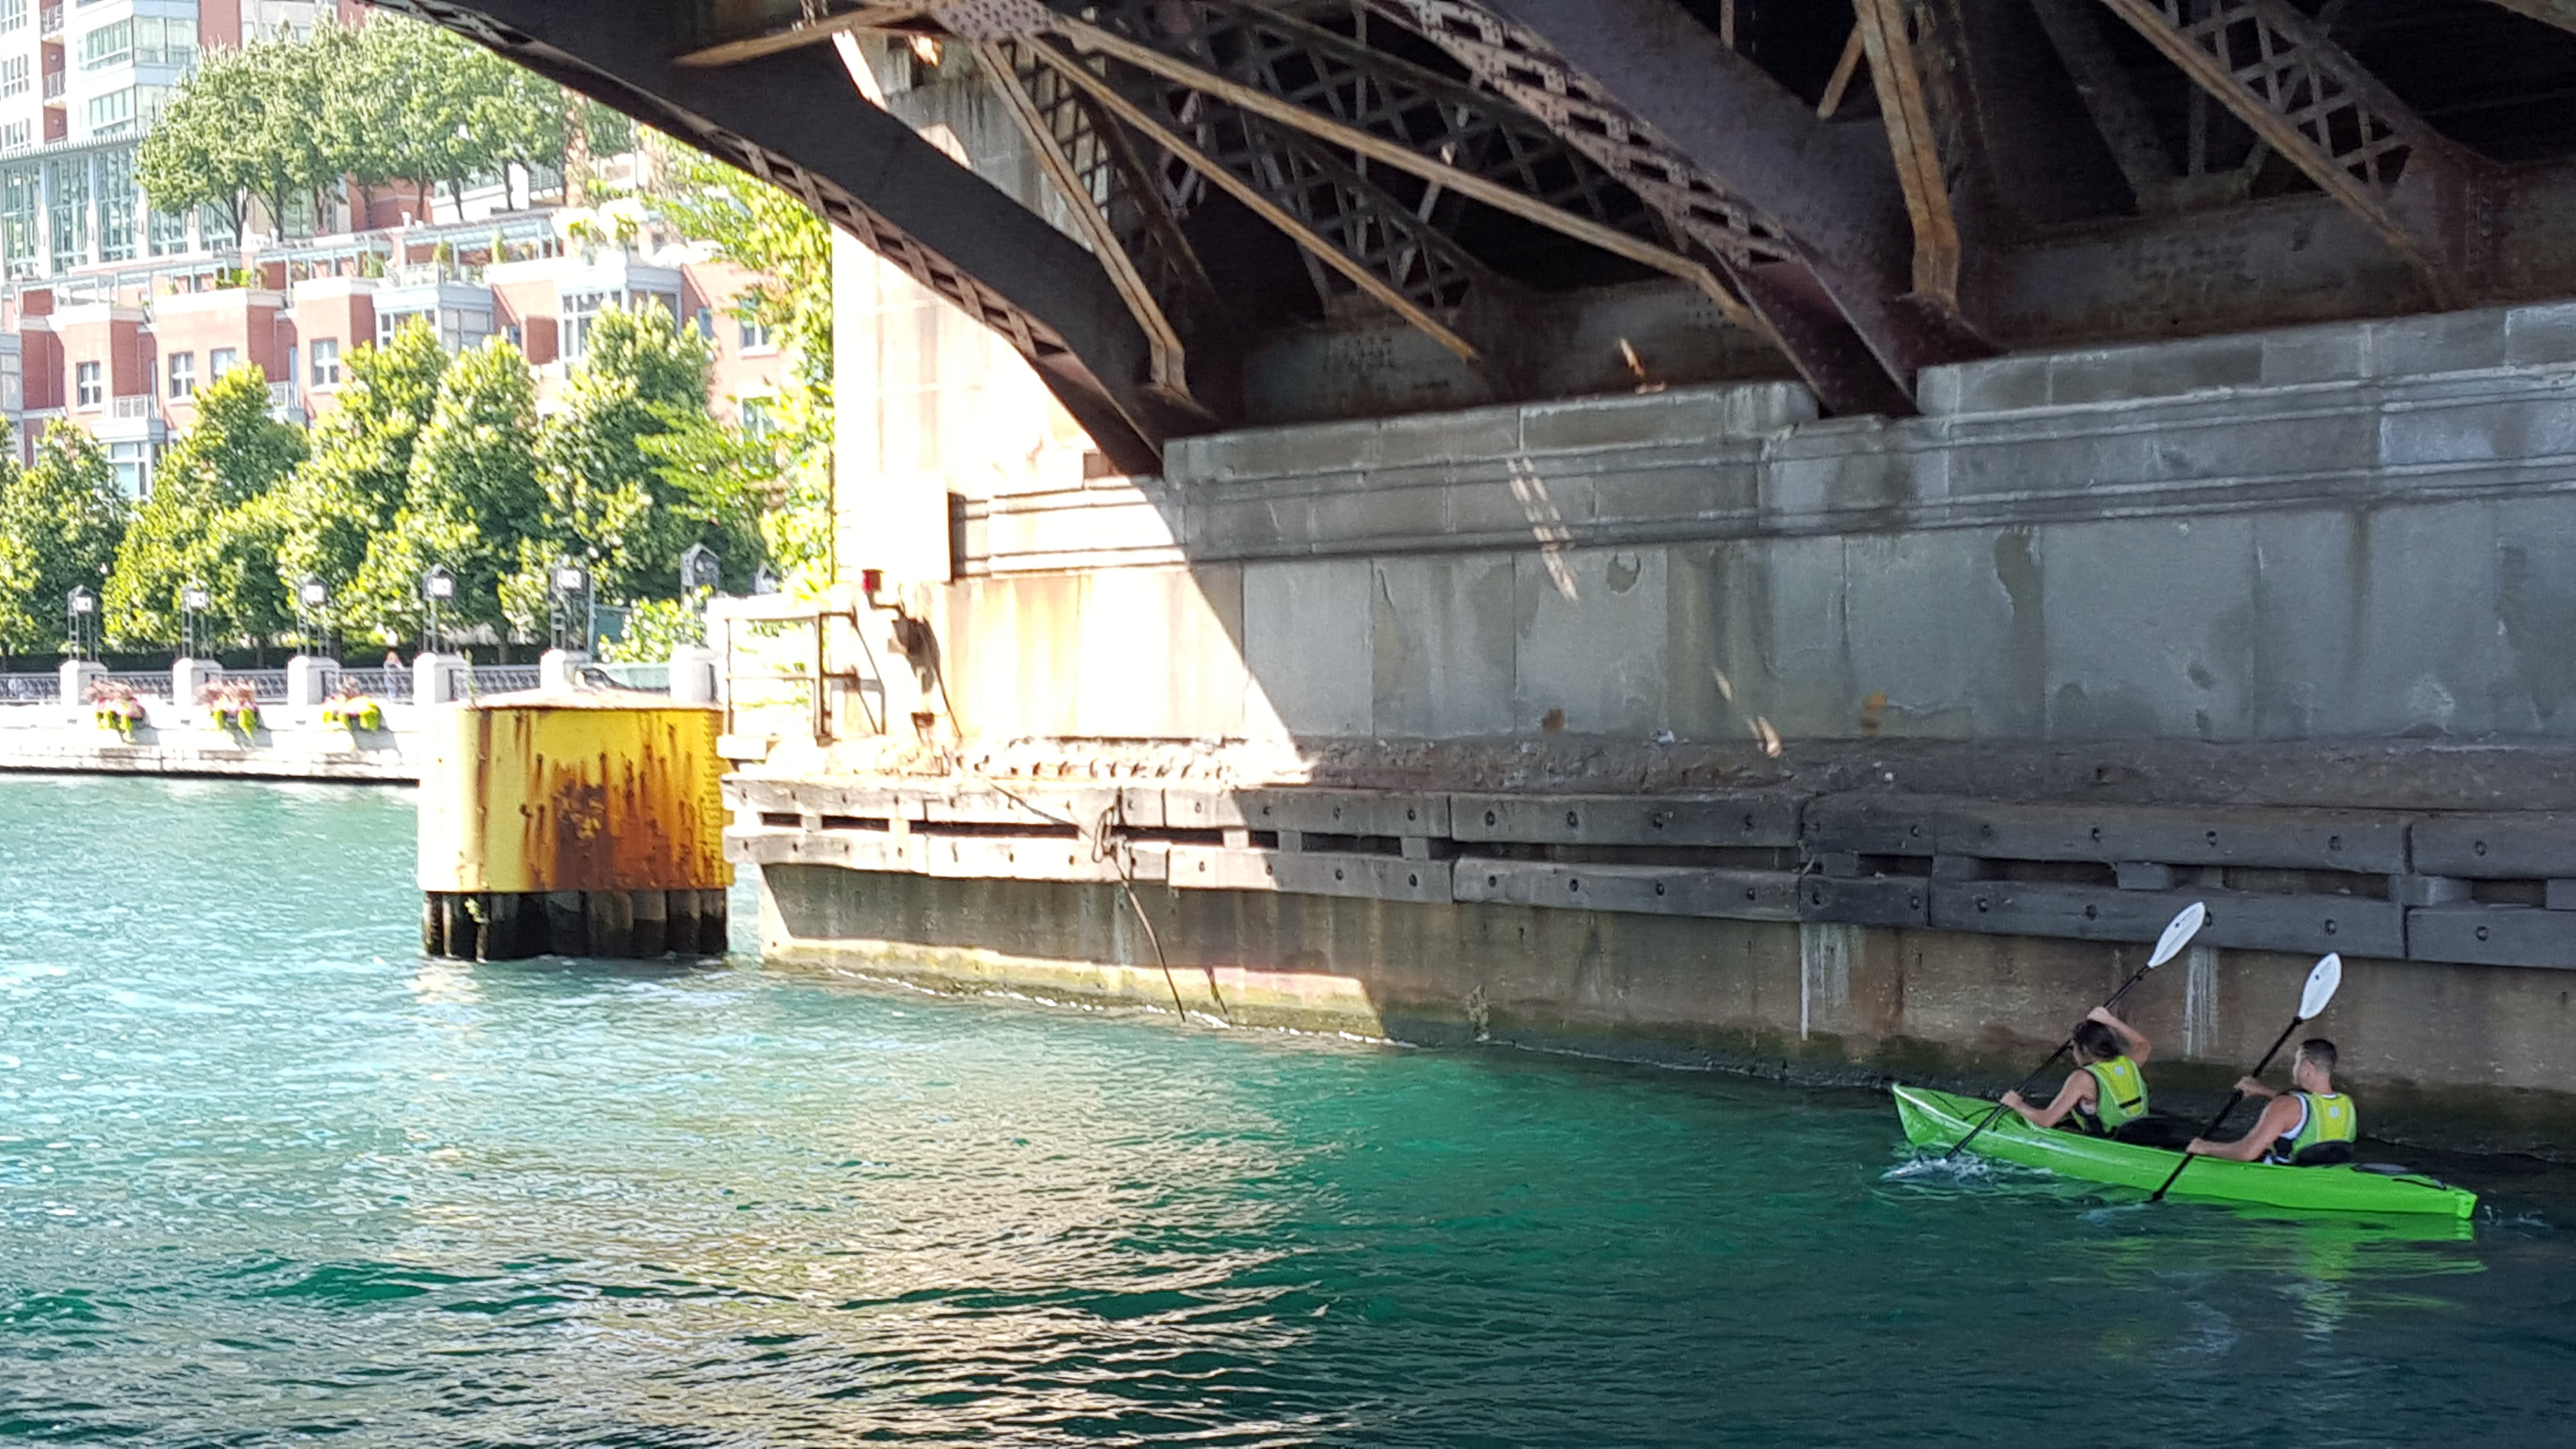 Free stock photo of bridge, chicago river, kayak, outdoorchallenge